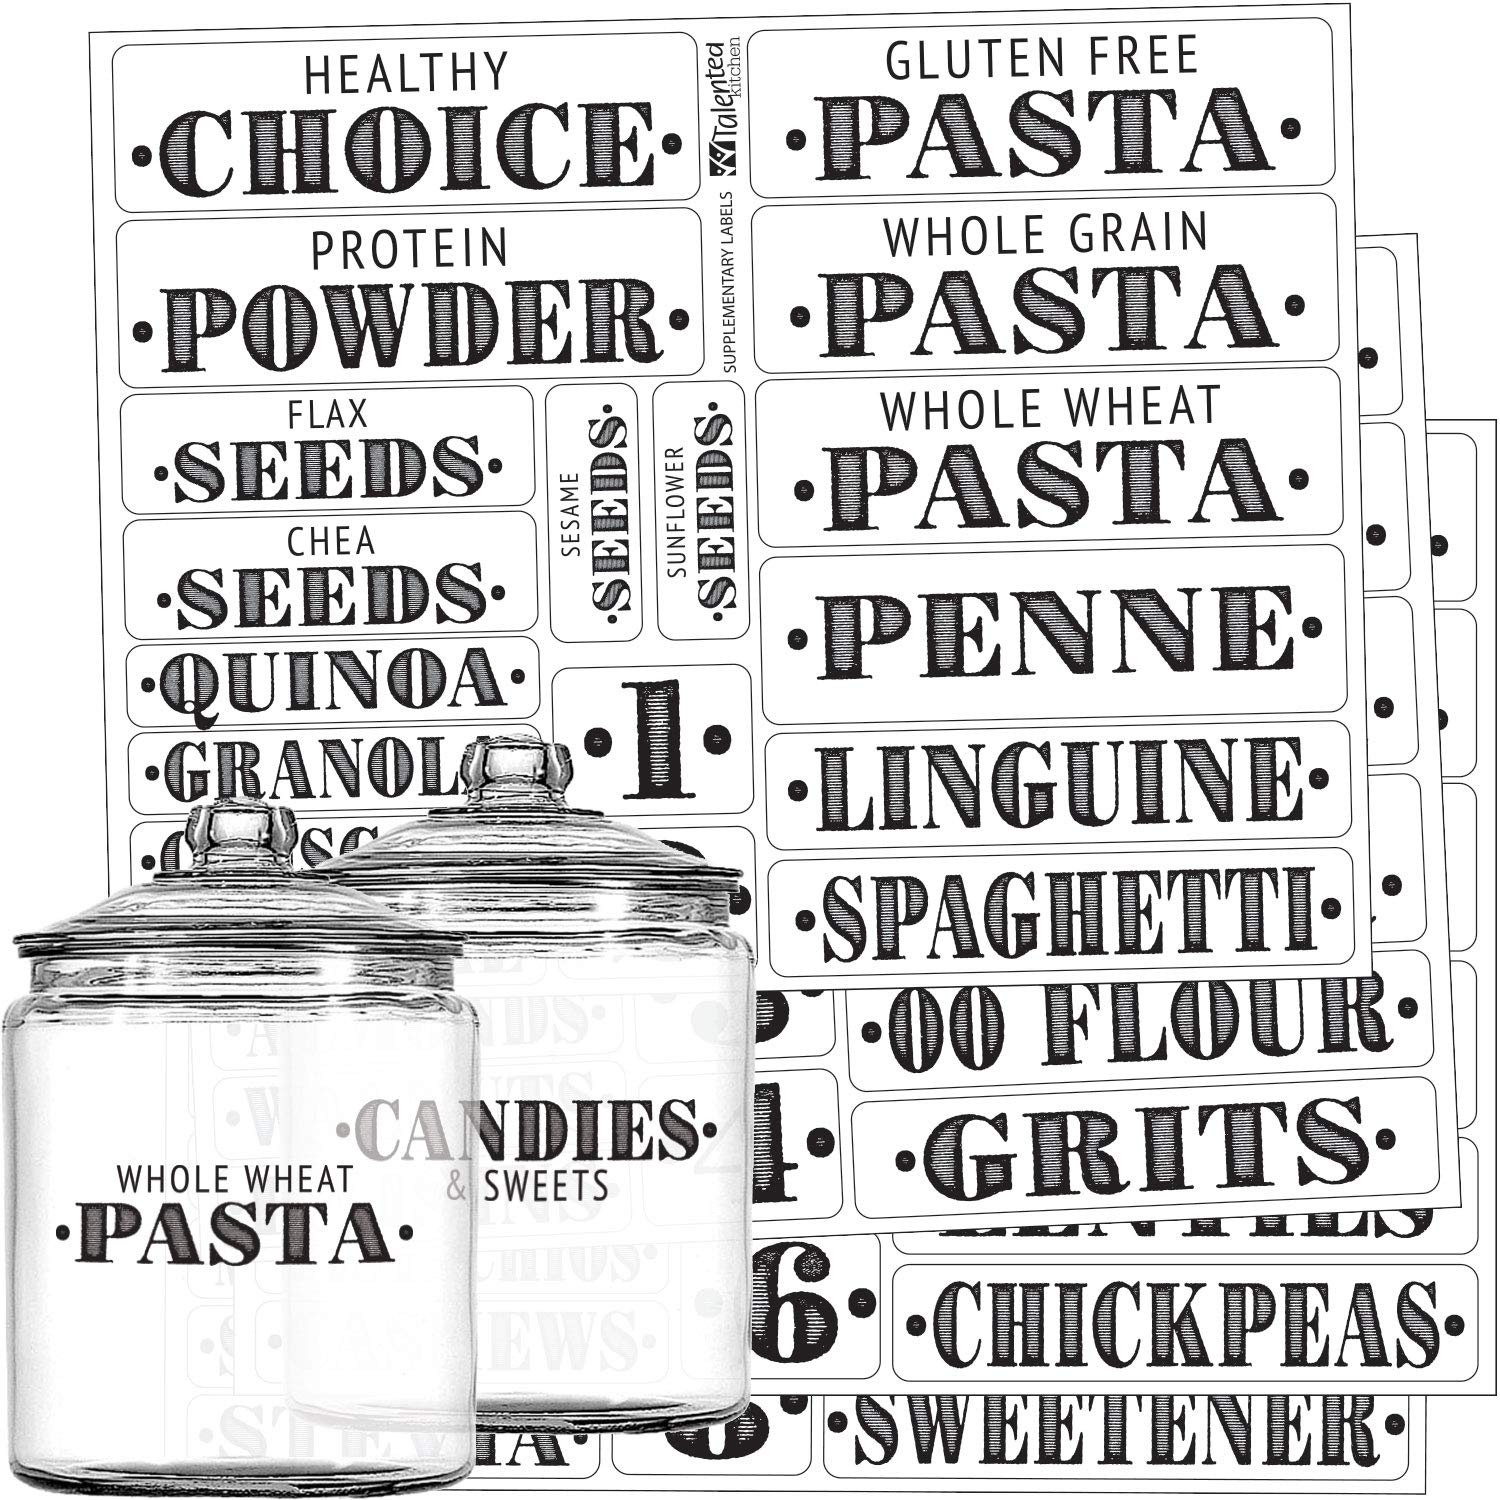 Talented Kitchen Farmhouse Pantry Labels – 72 Healthy Ingredients – Food Pantry Label Sticker. Water Resistant, Food Jar Labels. Jar Decals Pantry Organization Storage (Set of 72 – Non Main Pantry)